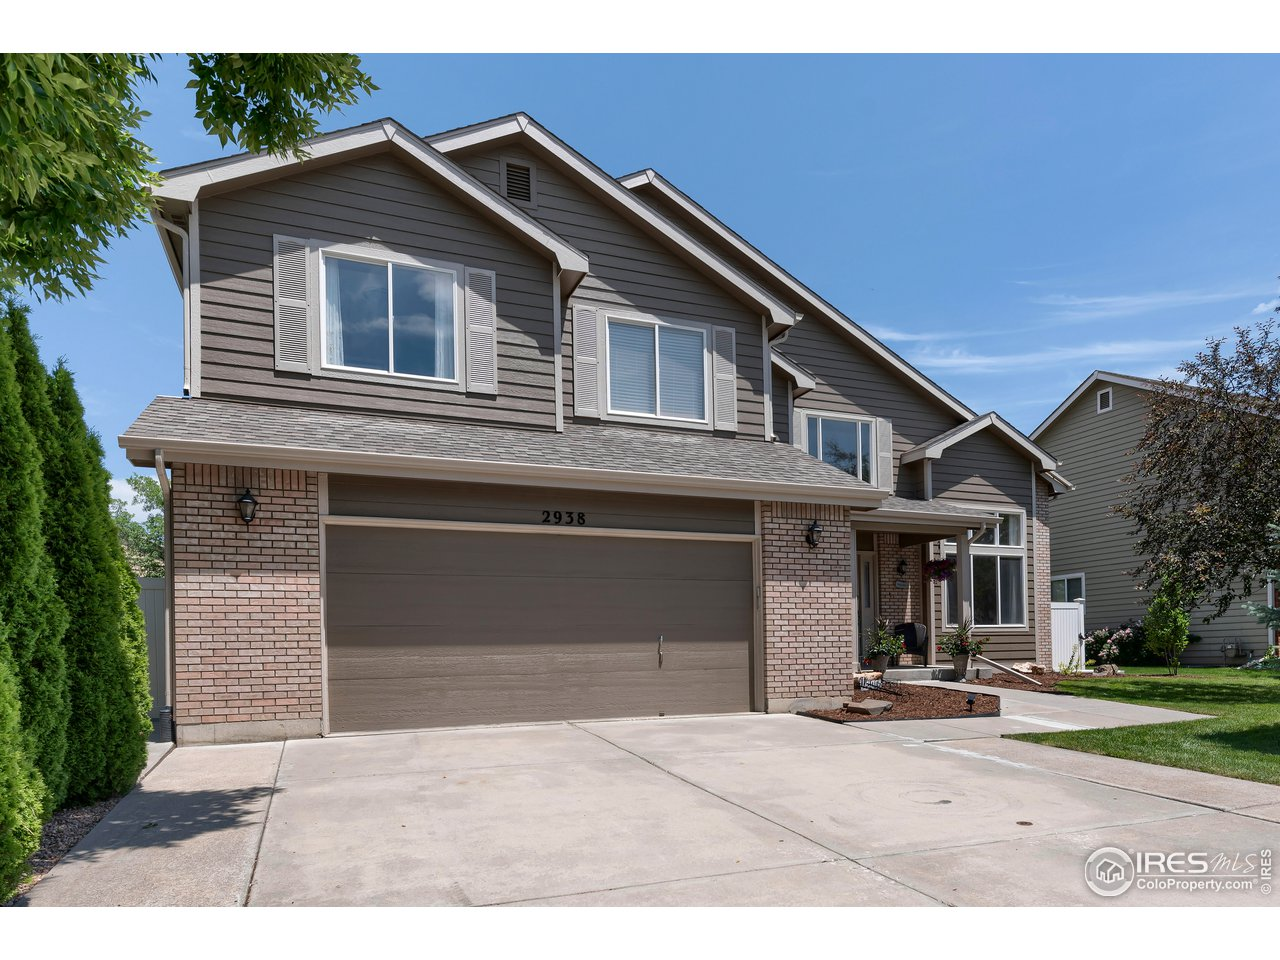 2938 Stonehaven Dr, Fort Collins CO 80525